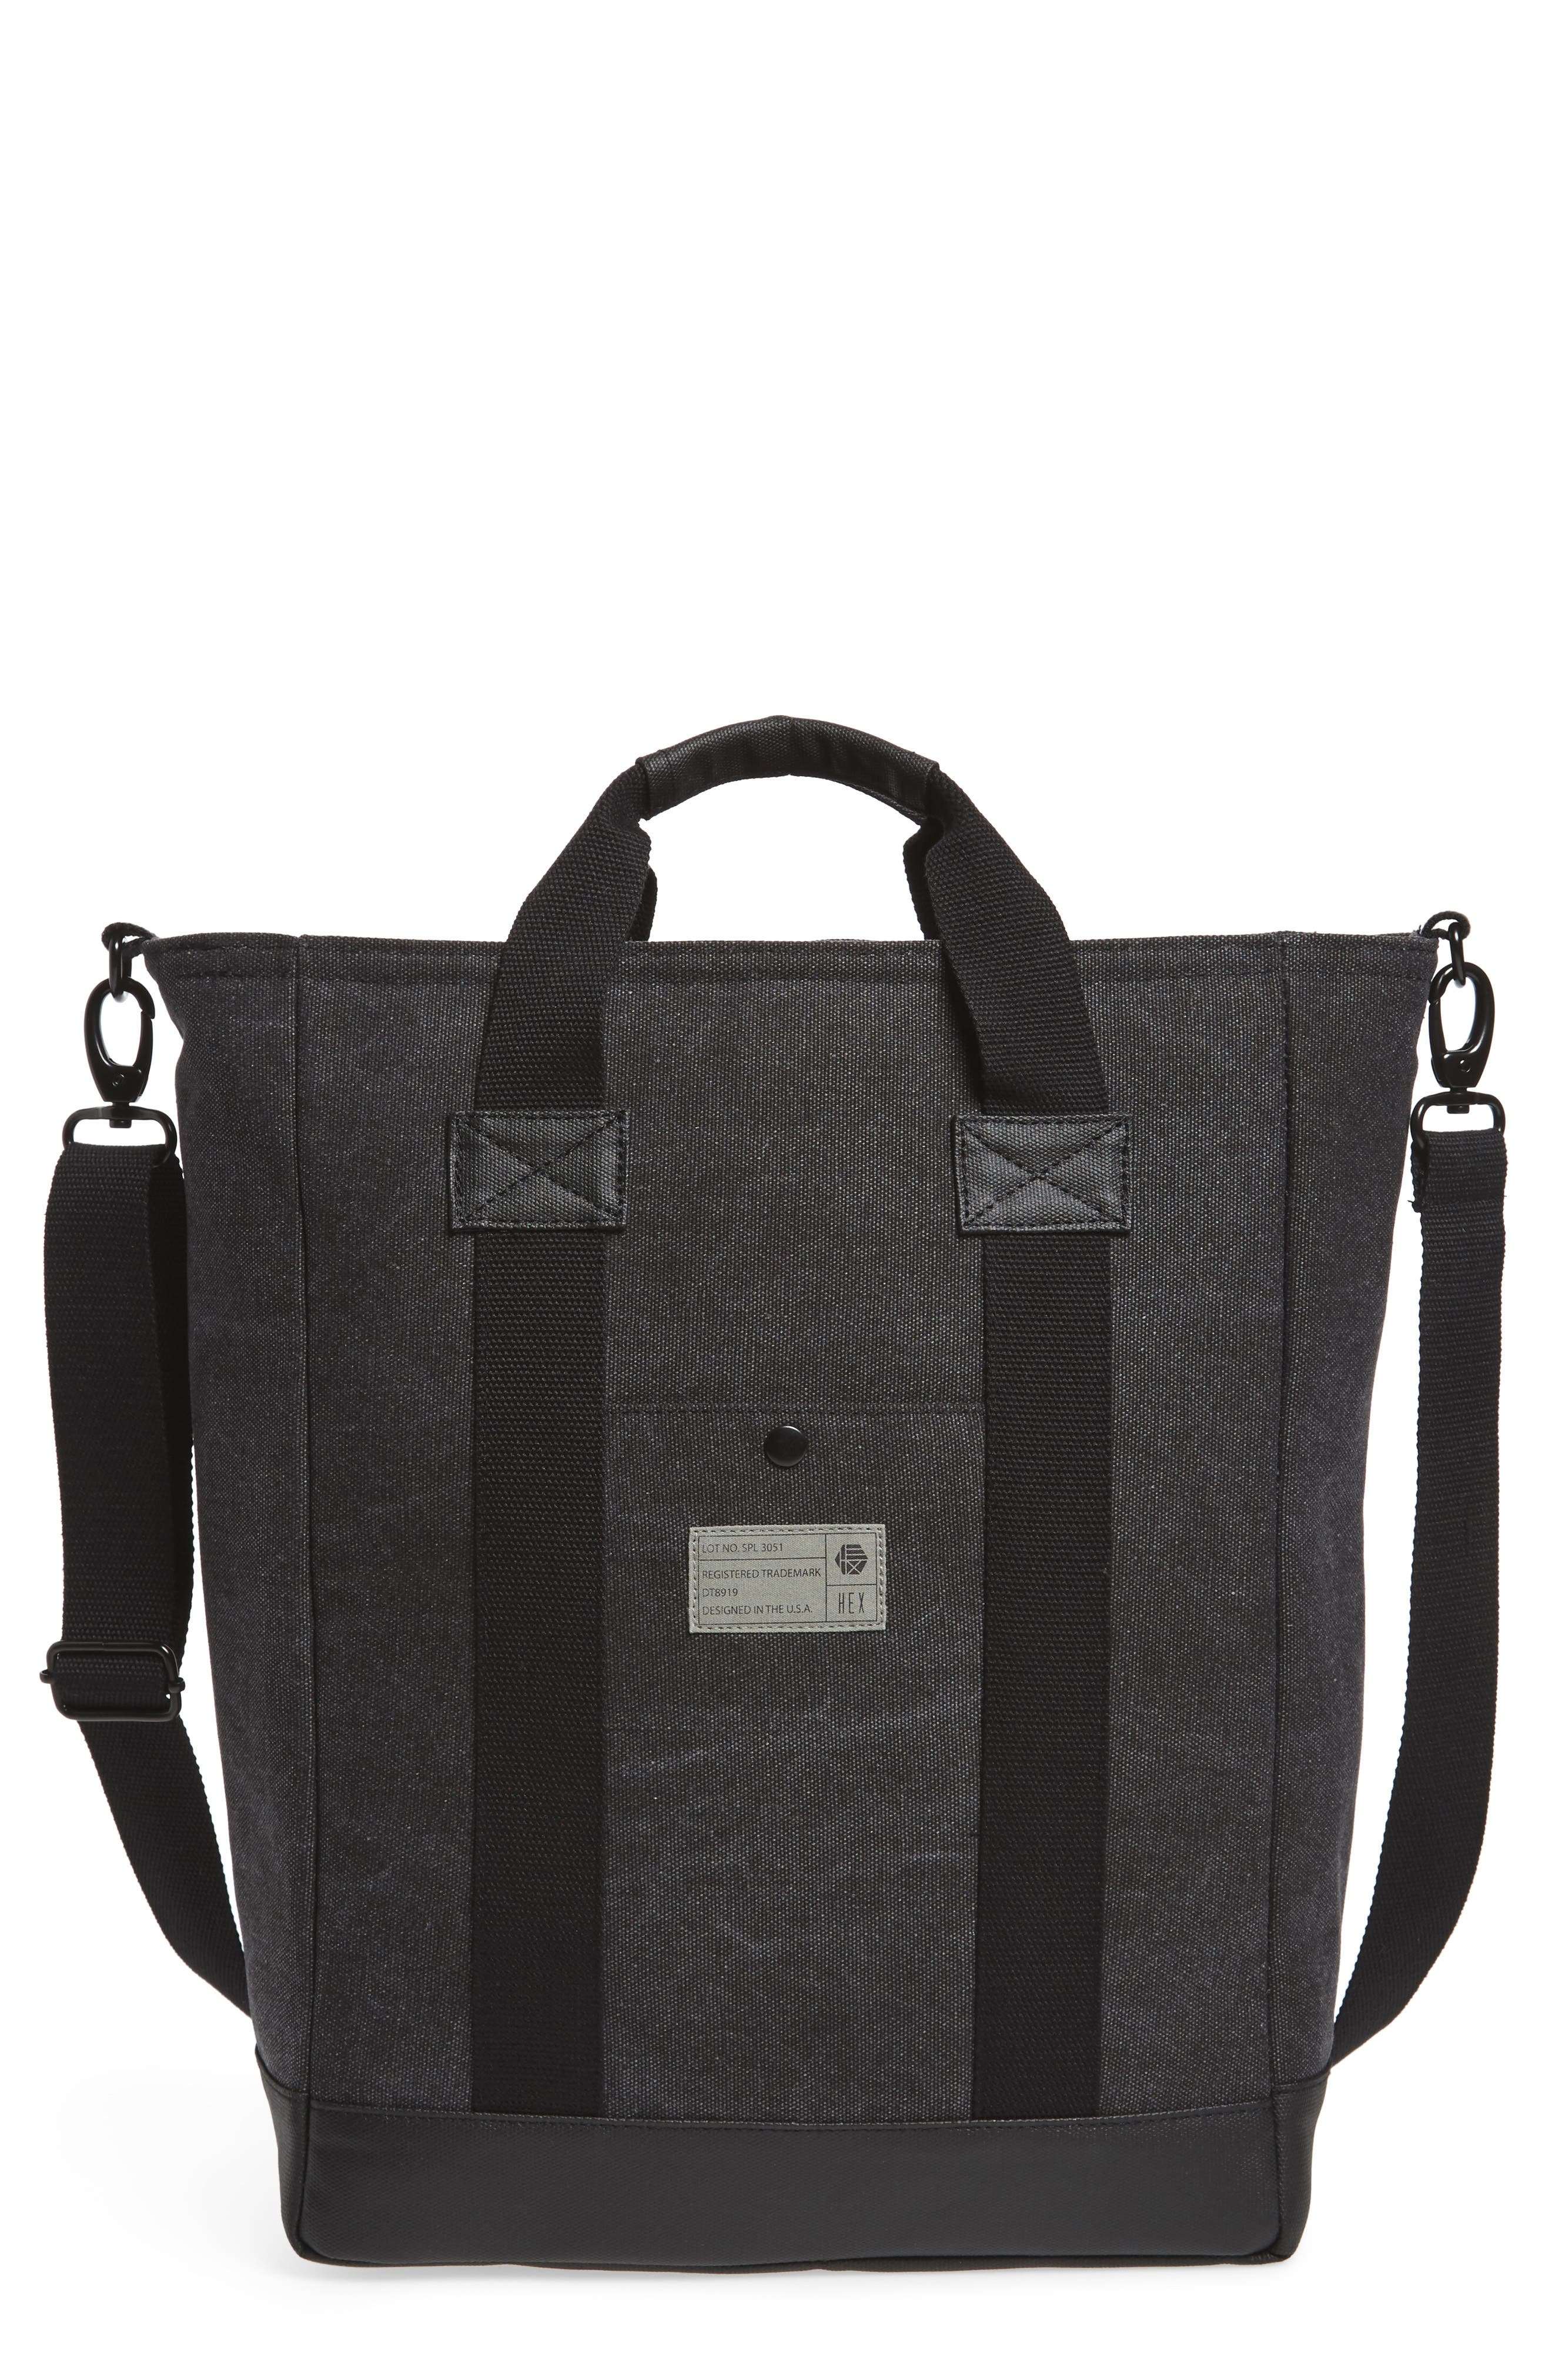 HEX Canvas Tote Bag